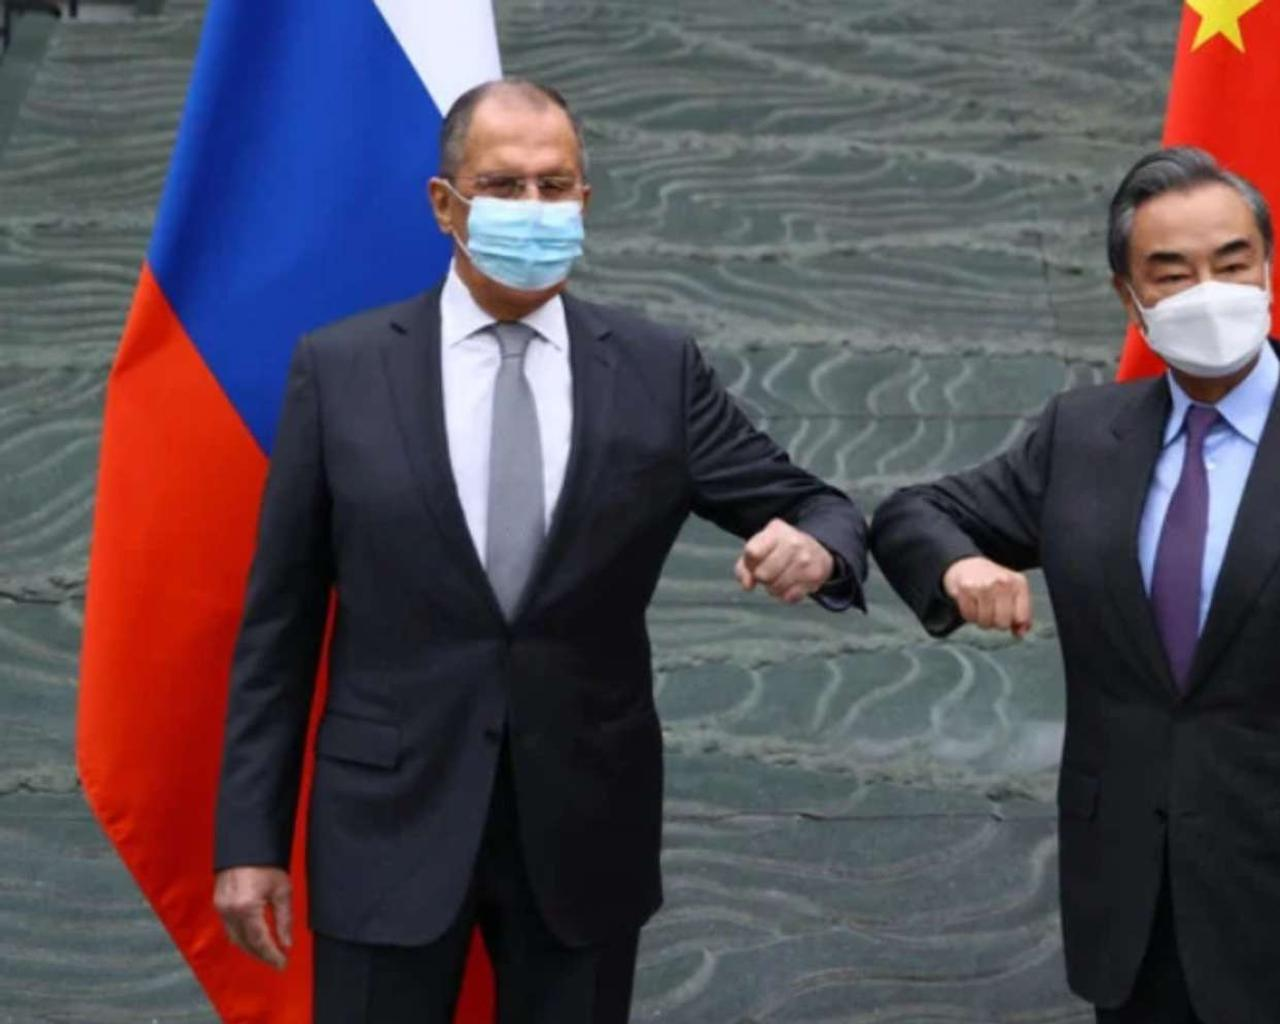 China and Russia make a gesture of unity to the EU and the US.